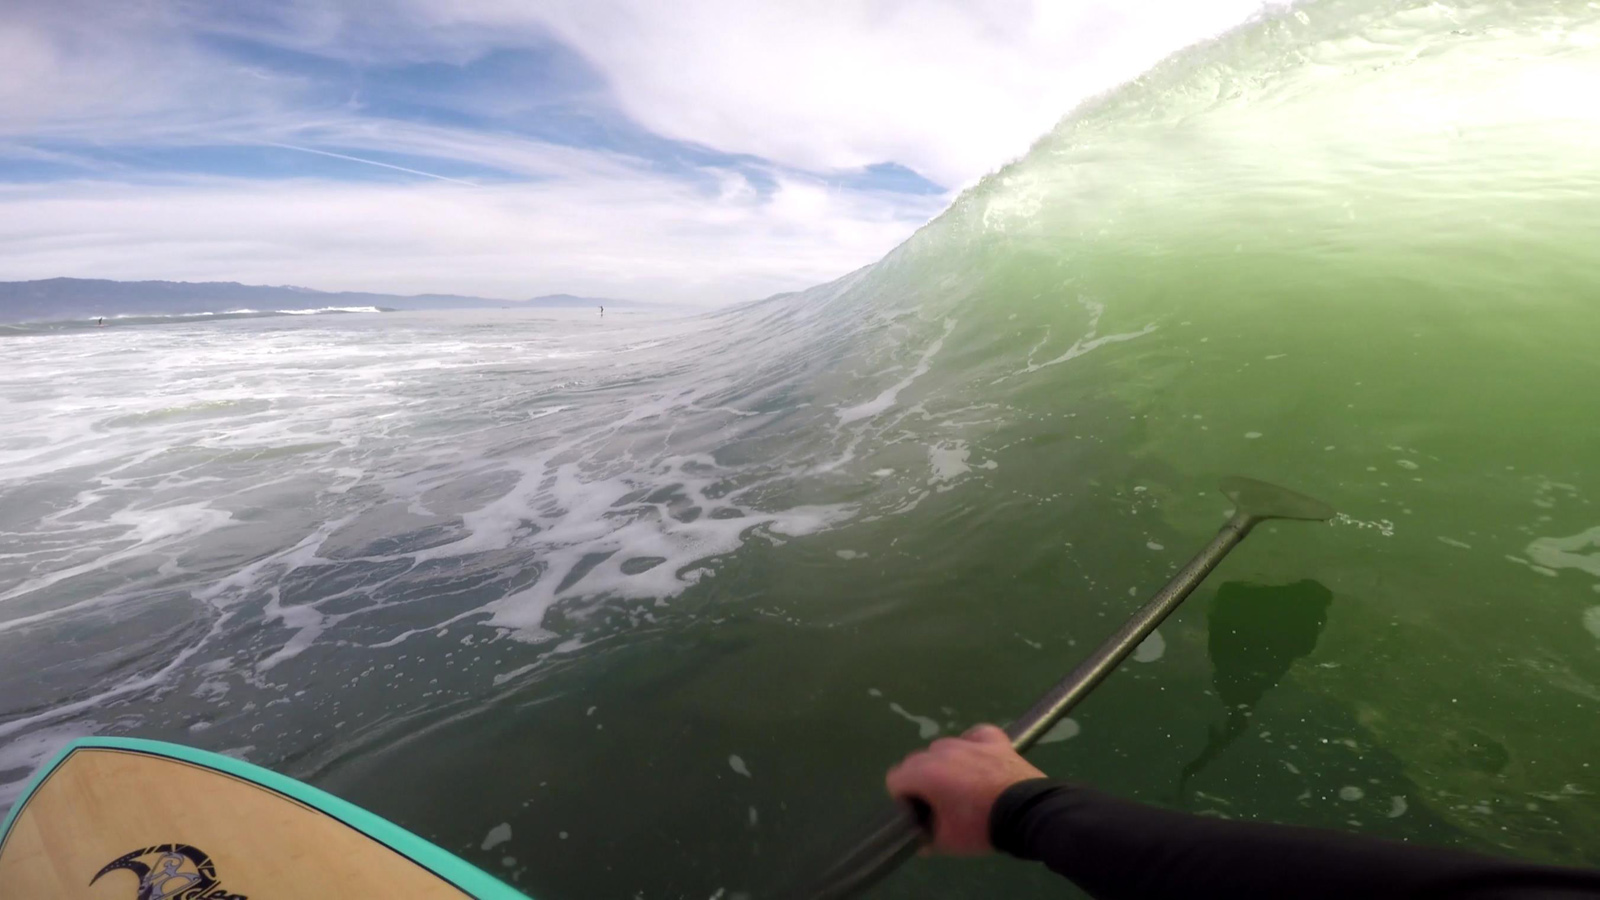 winter2016_sb_reef_waves74